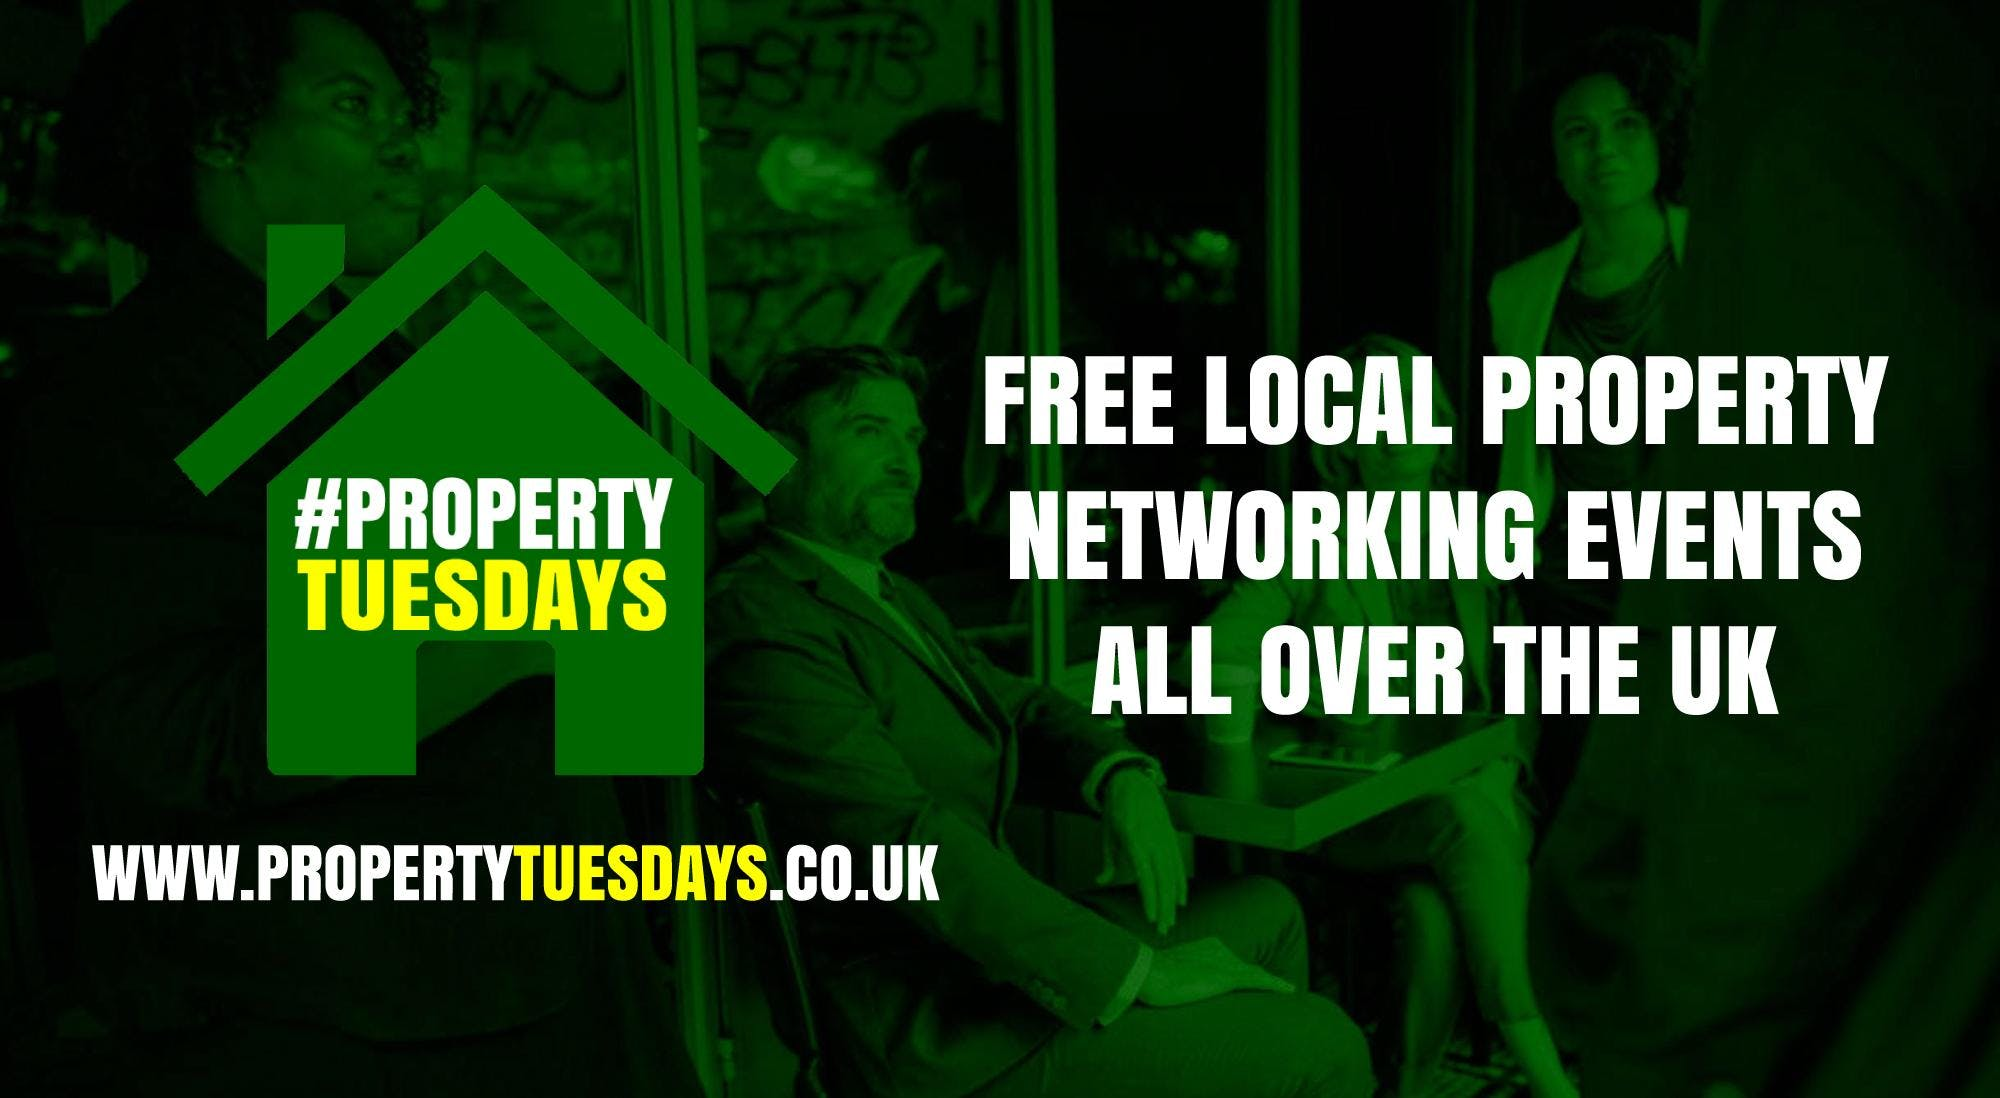 Property Tuesdays! Free property networking event in Birmingham